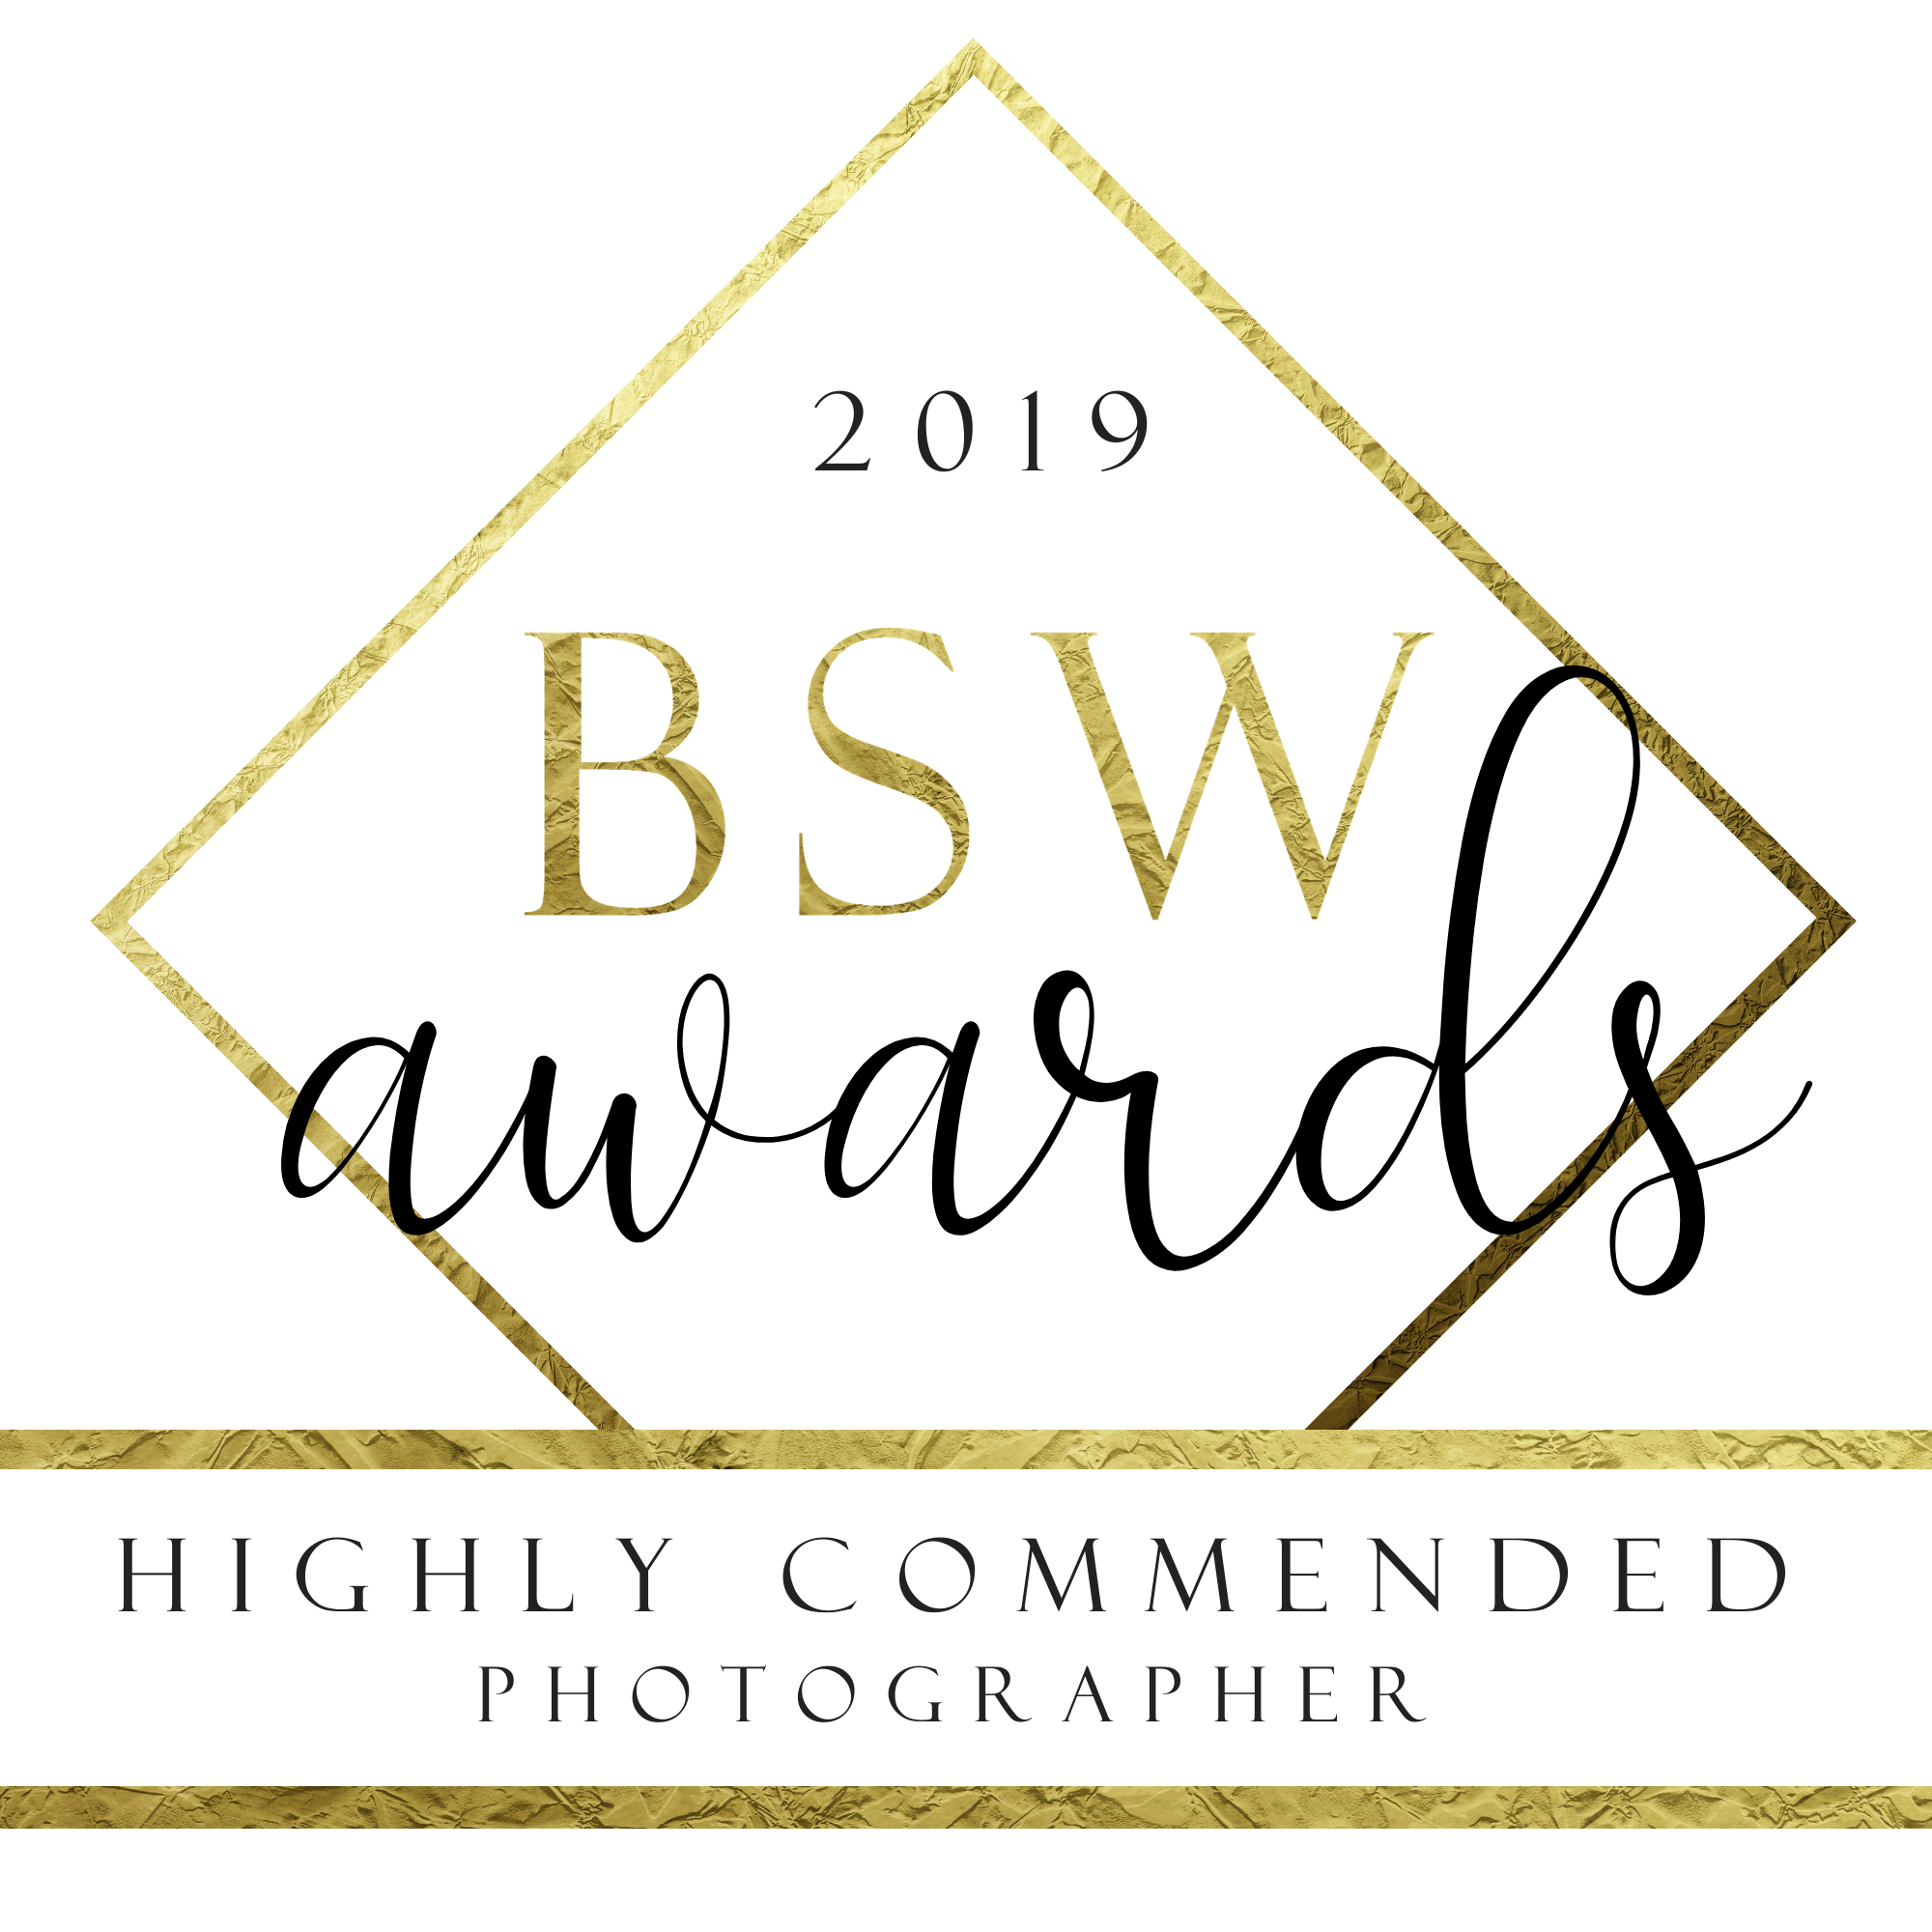 BSW Awards Highly Commended